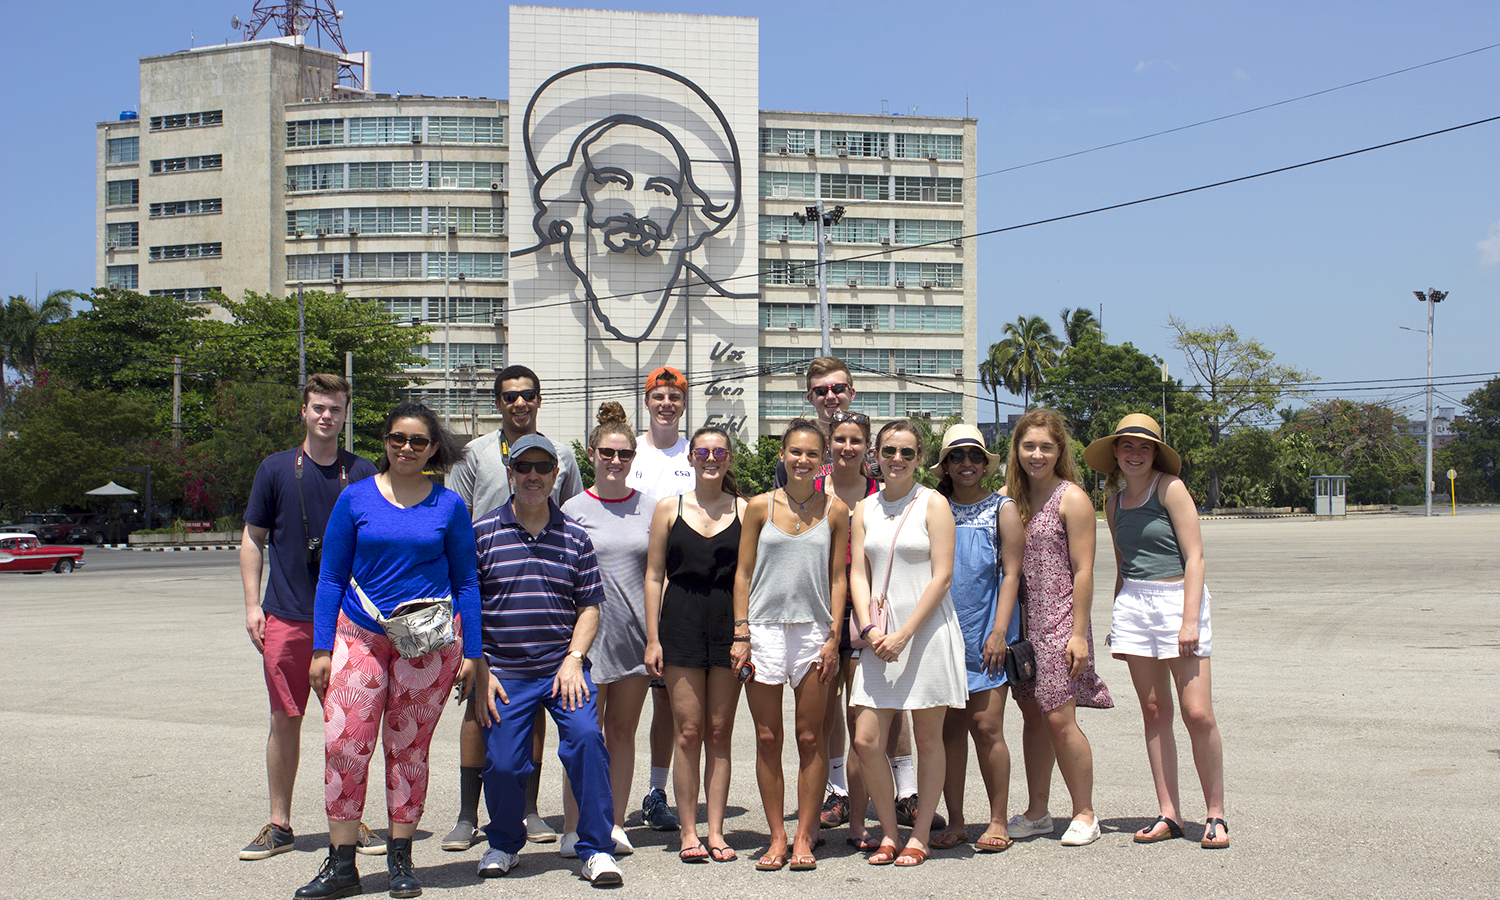 The group poses in front of the Ministry of Informatics and Communications building at the Plaza de la Revolución. Pictured on the building is Camilo Cienfuegos, a Cuban revolutionary.